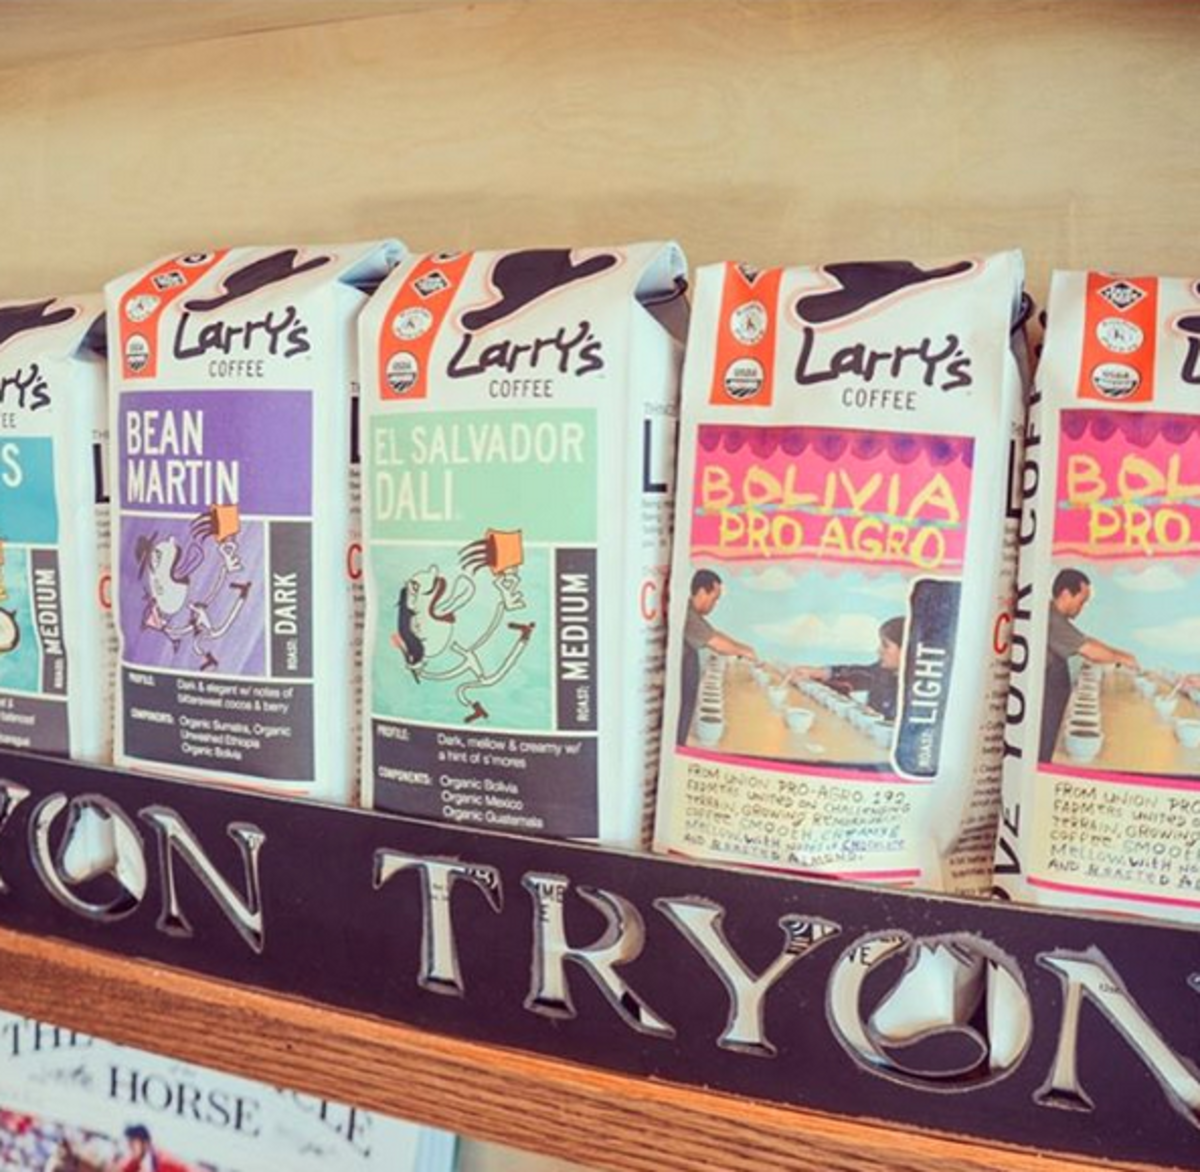 Larry's Coffee makes conscious coffee taste great.